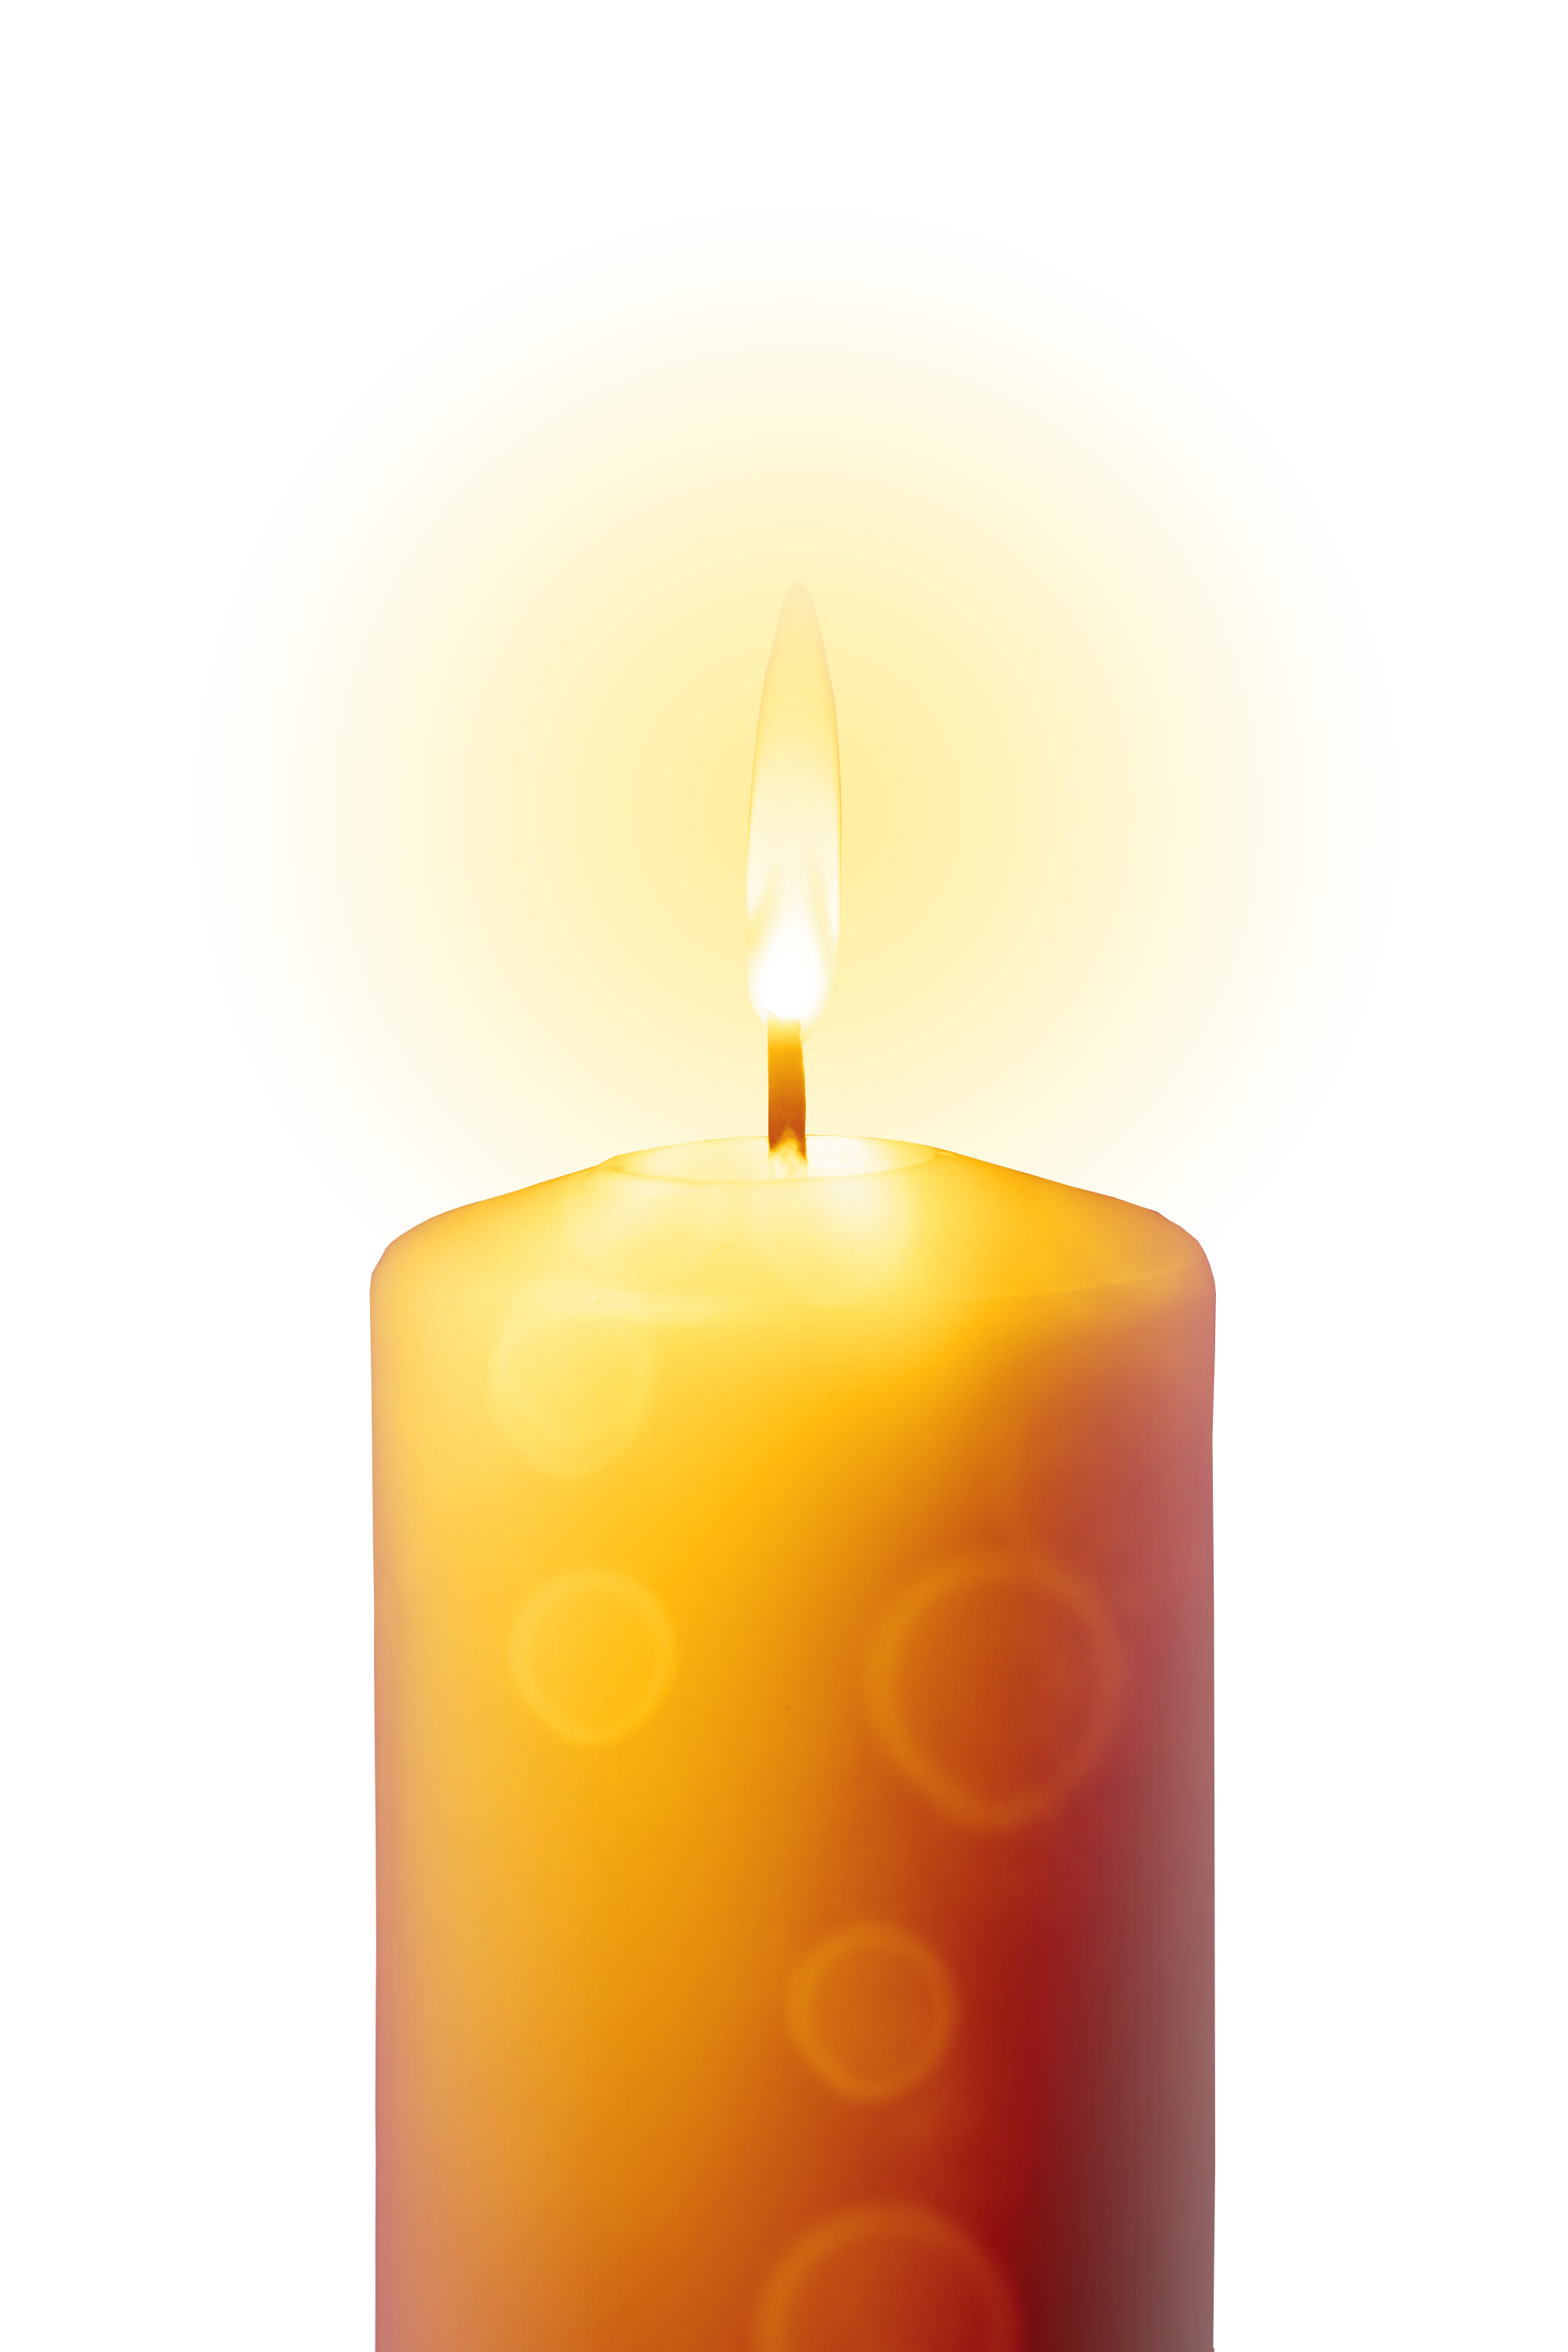 Transparent candles. Candle for sister eva